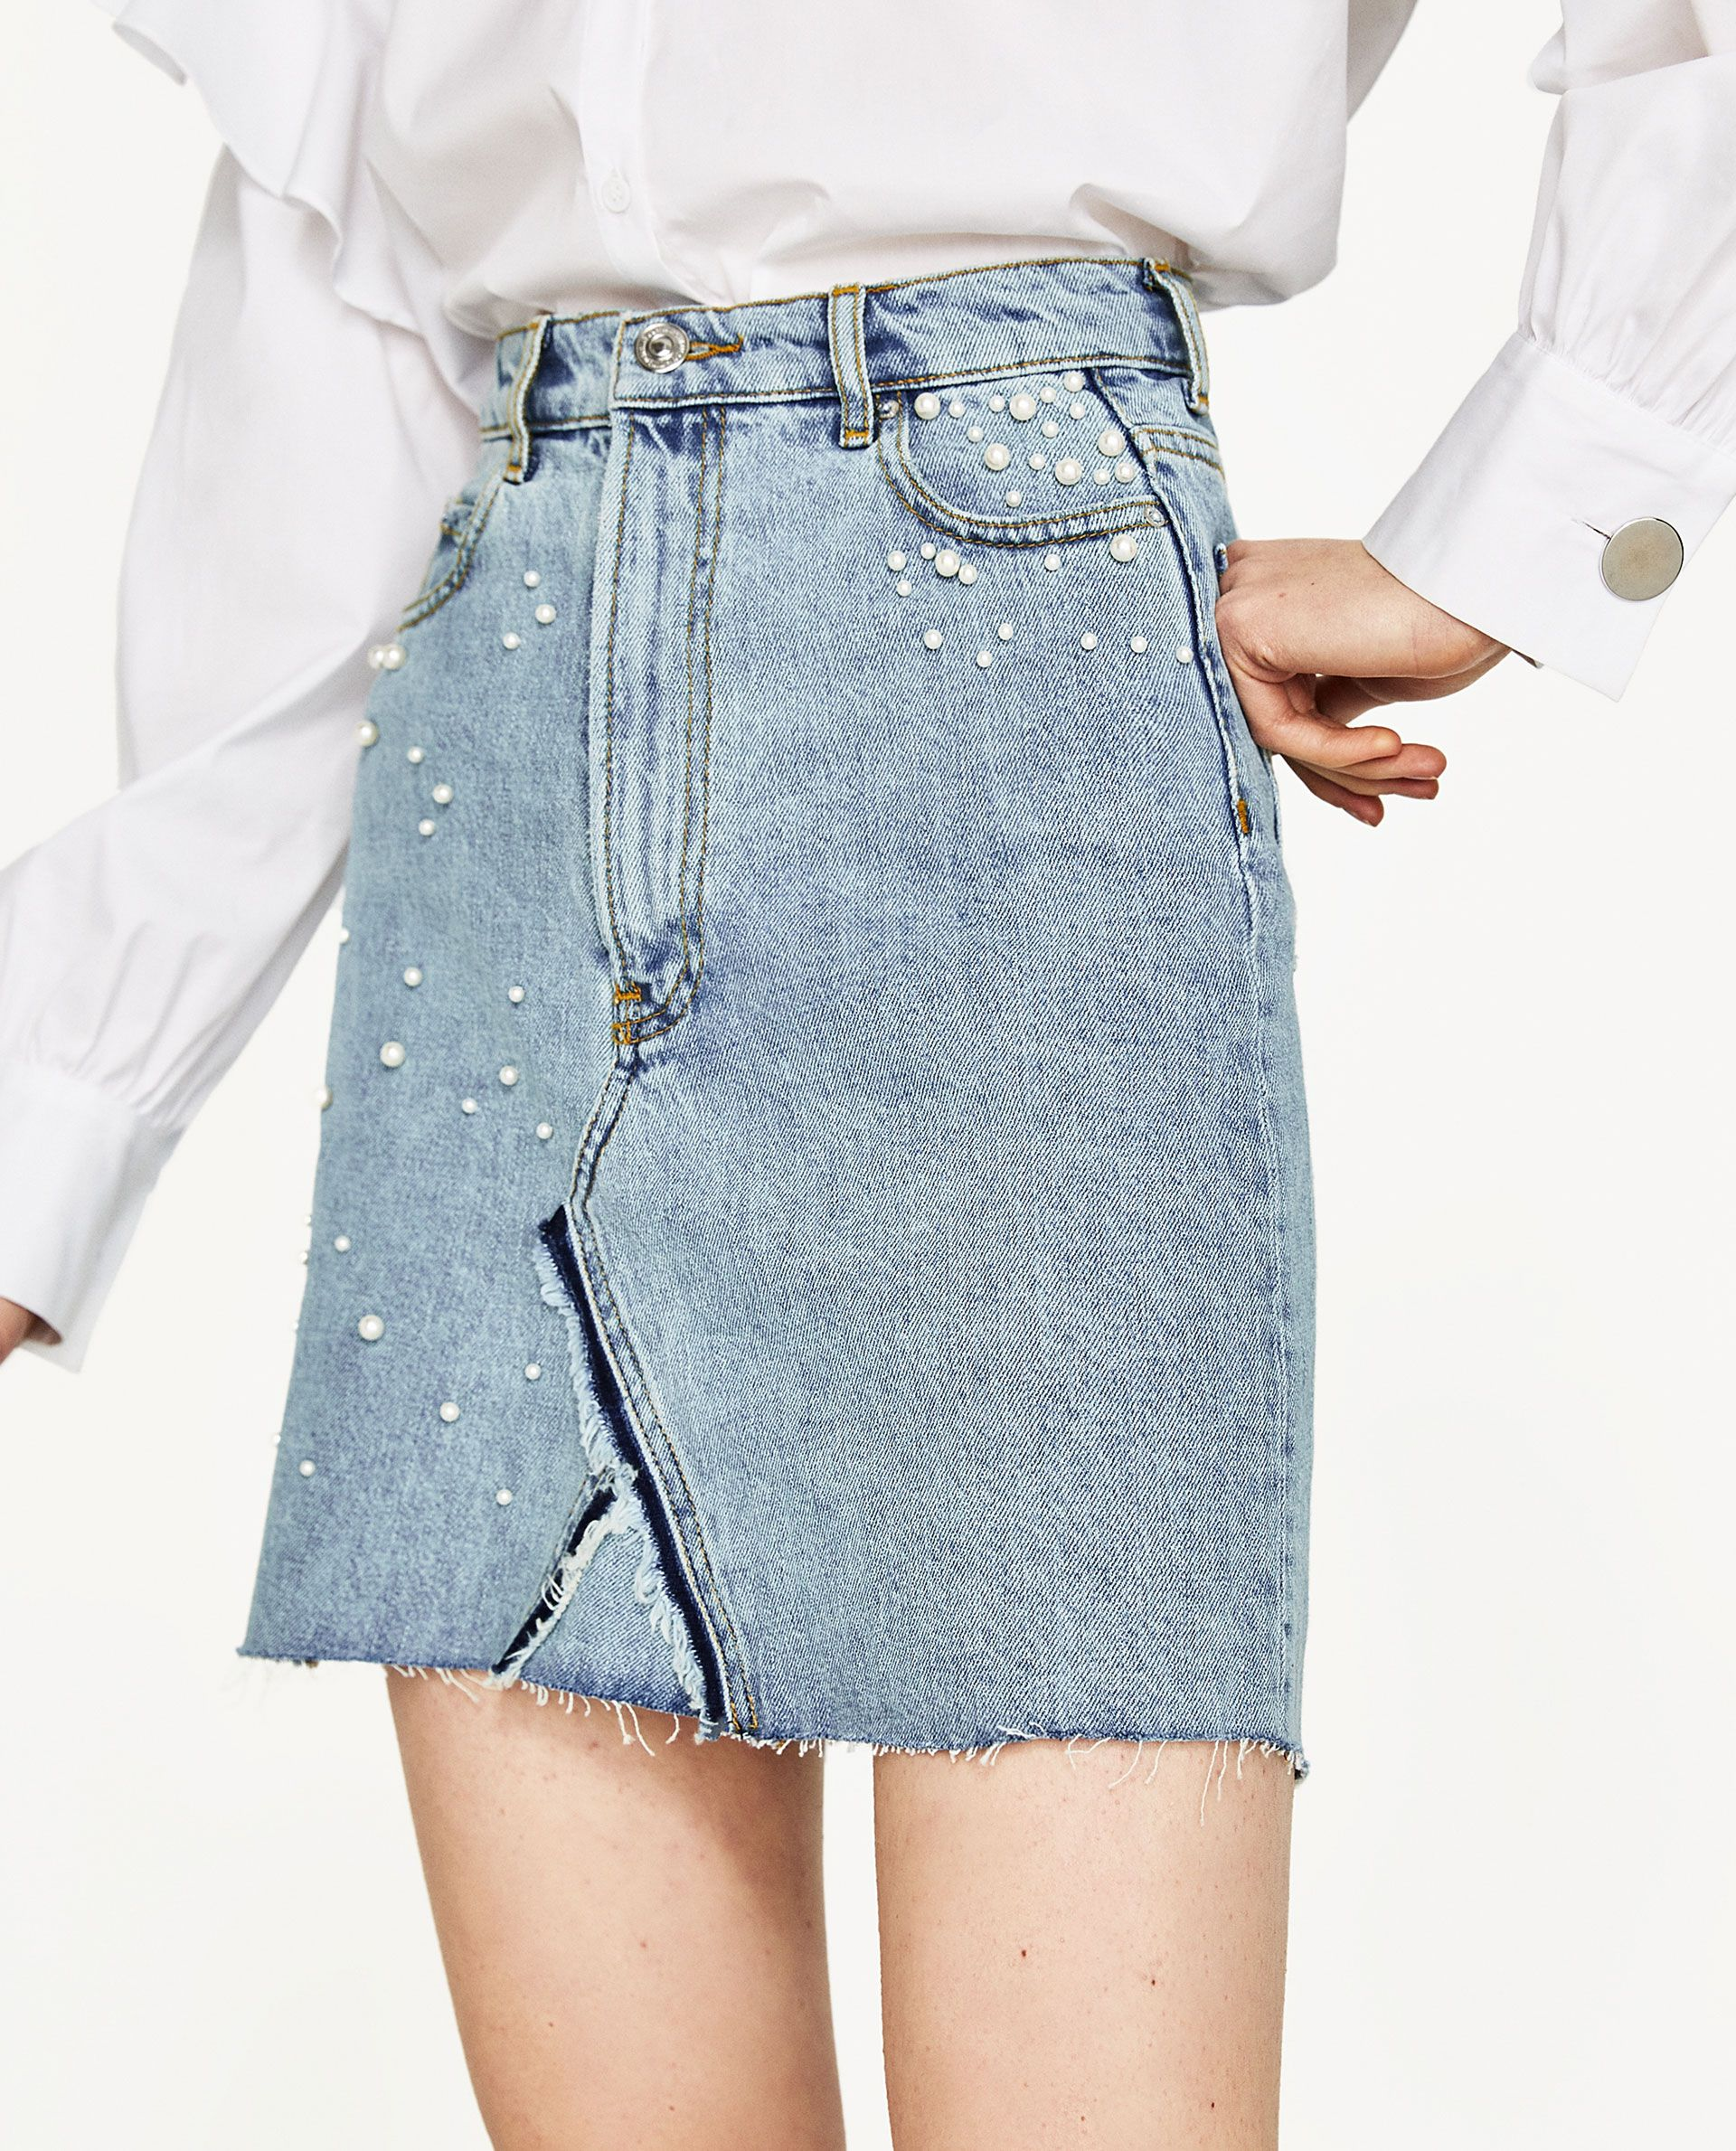 aa0ae195207 Image 2 of DENIM SKIRT WITH PEARL DETAILS from Zara